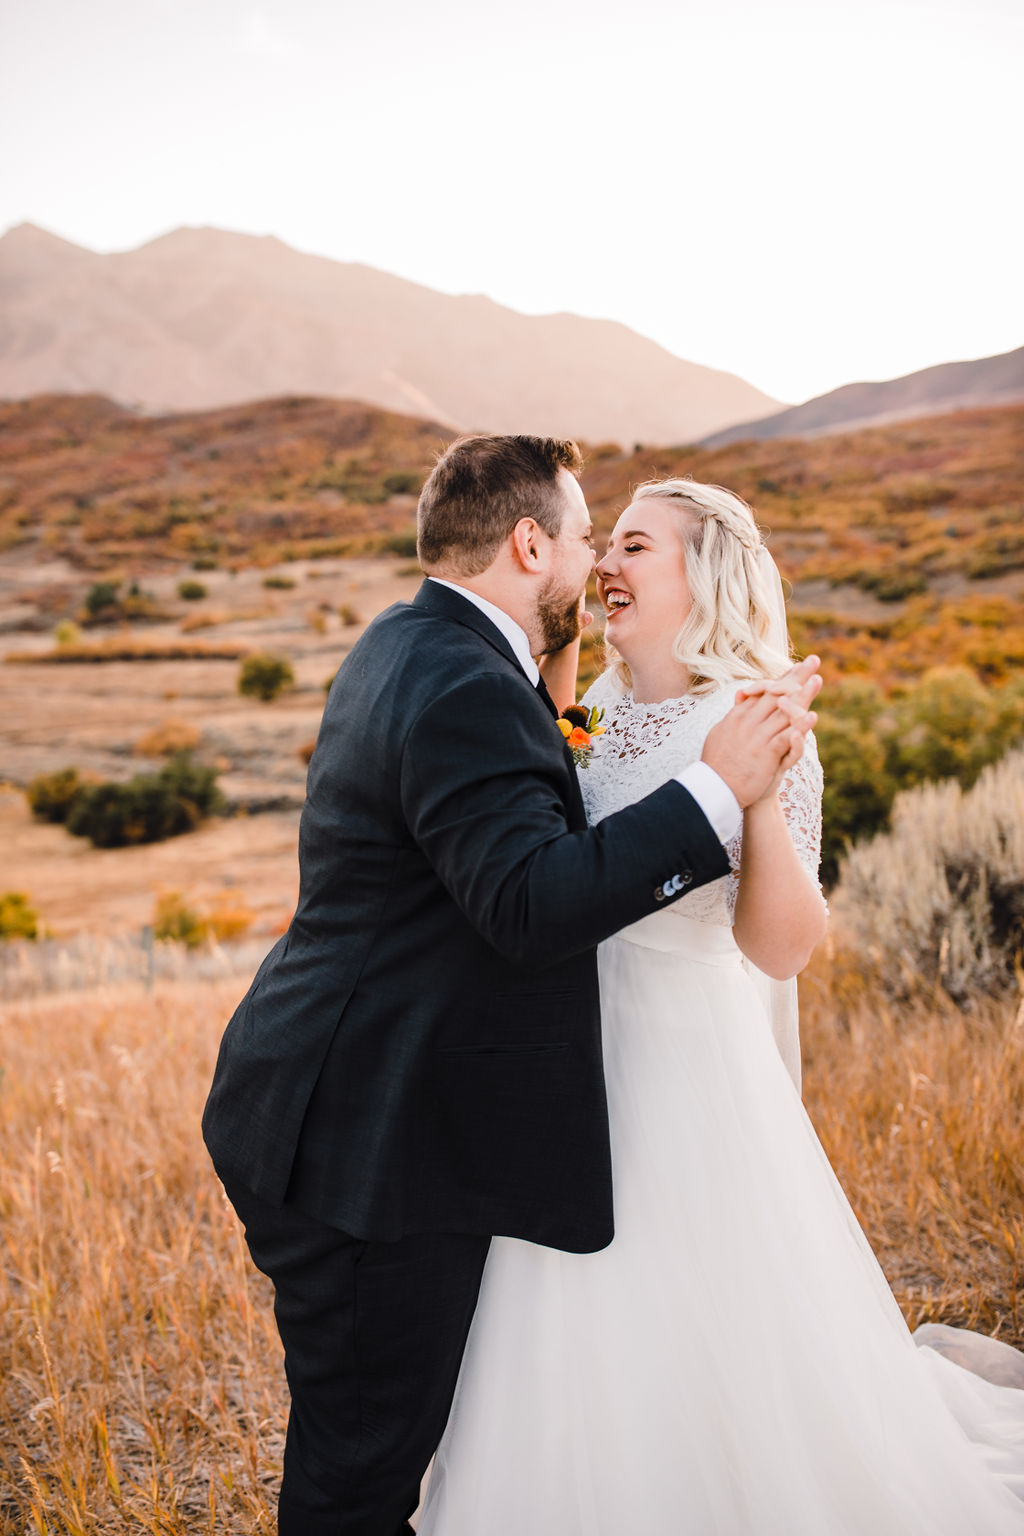 best professional formal photographer ogden utah hugging holding hands laughing smiling playful fall colors mountains